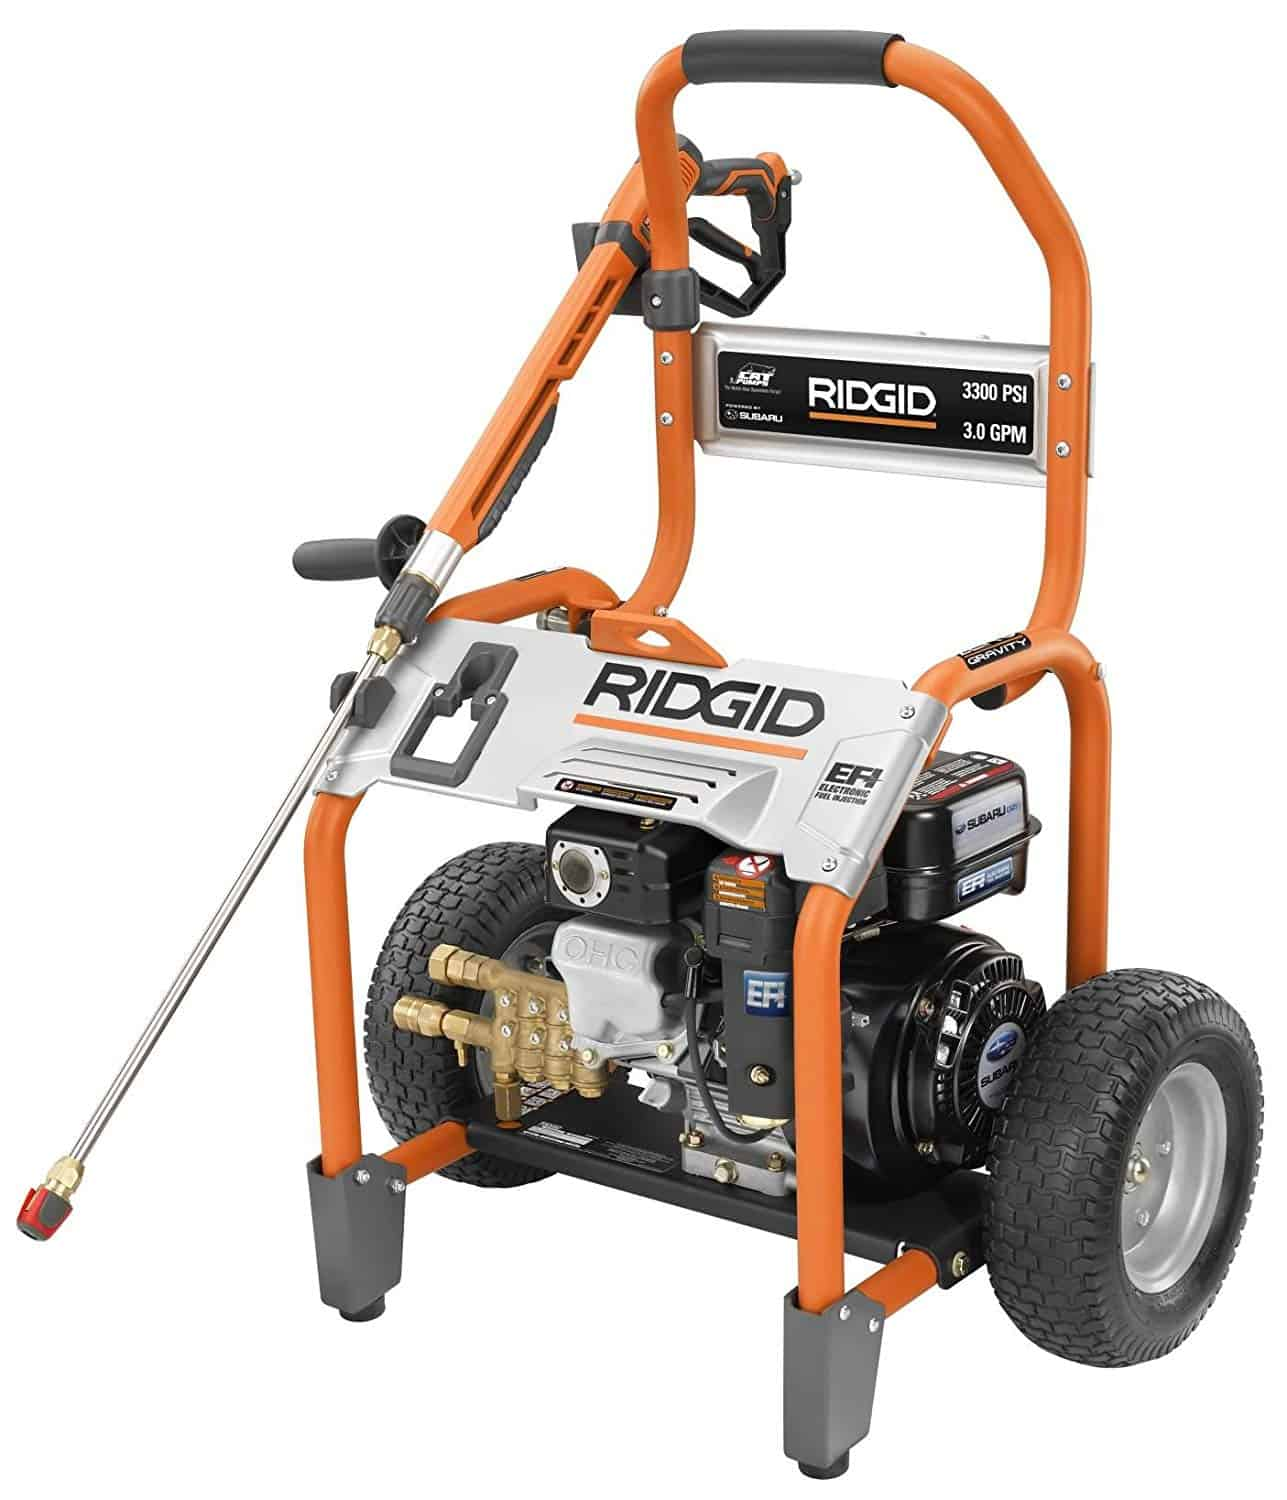 Rigid 3300 Subaru Pressure Washer